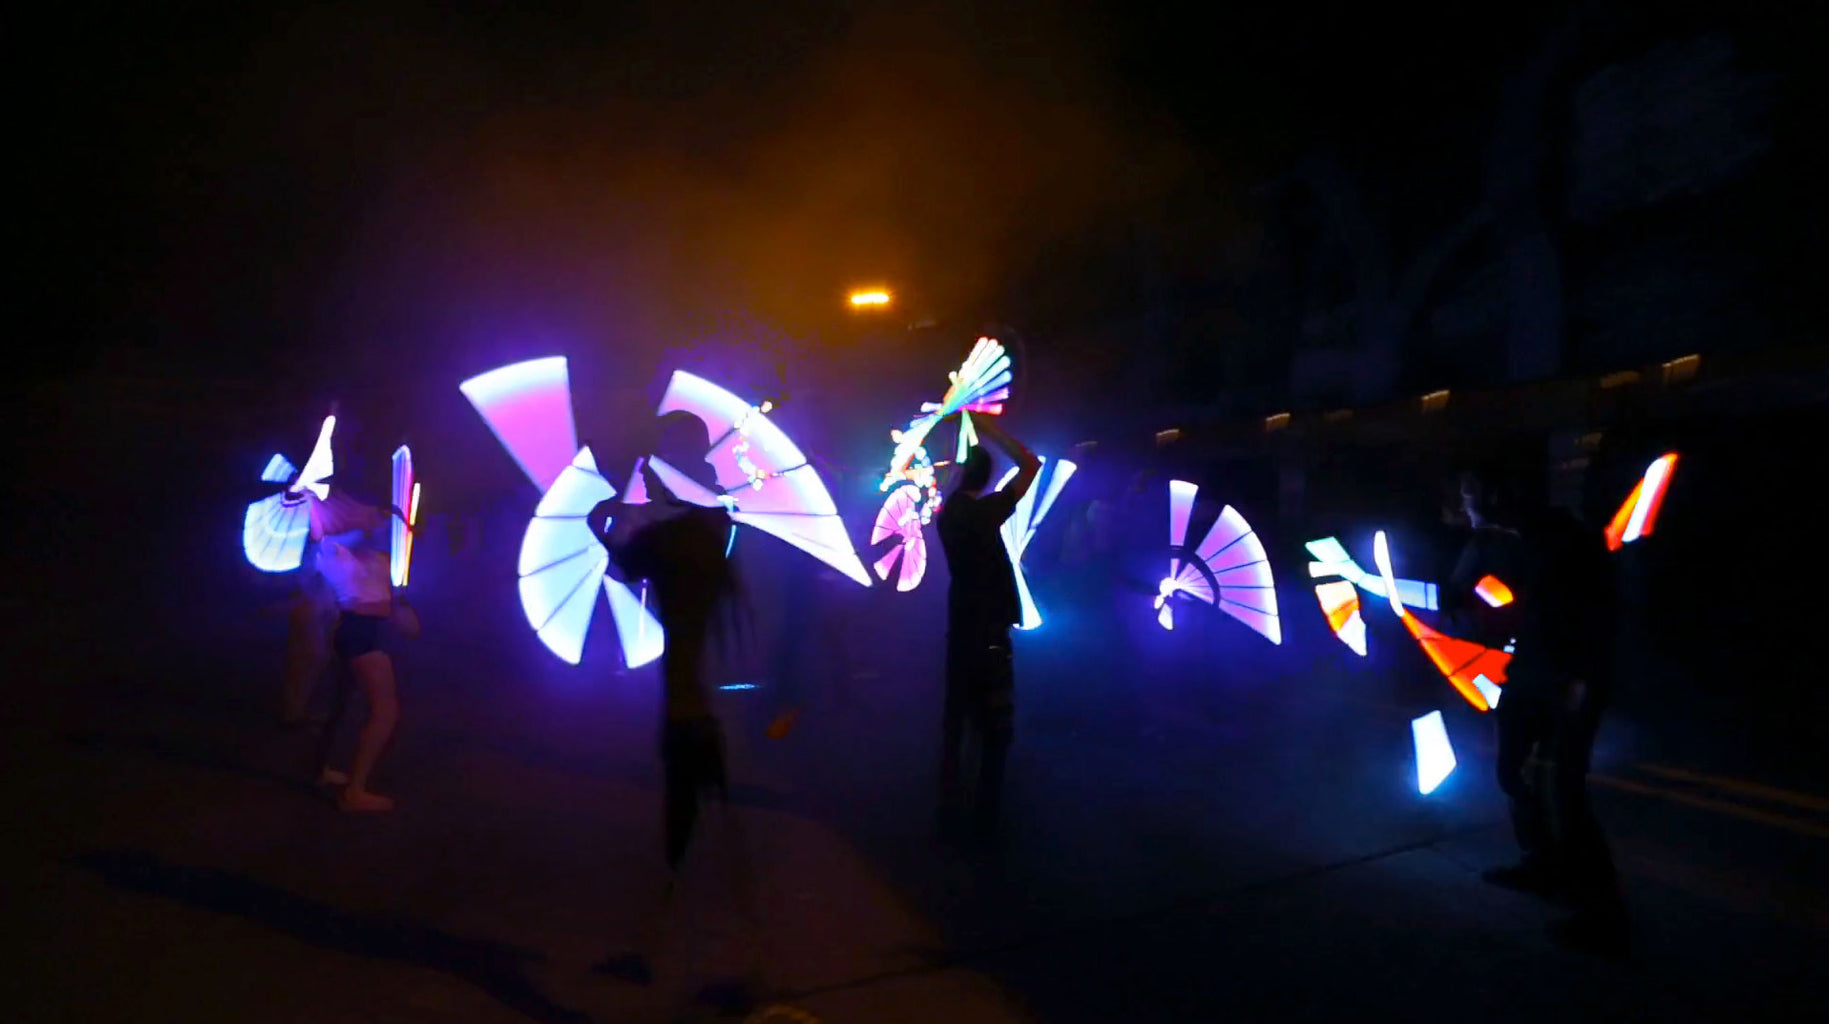 Threeworlds Australia Led Dance Glove Get The Party Started With Your Own Interactive Light